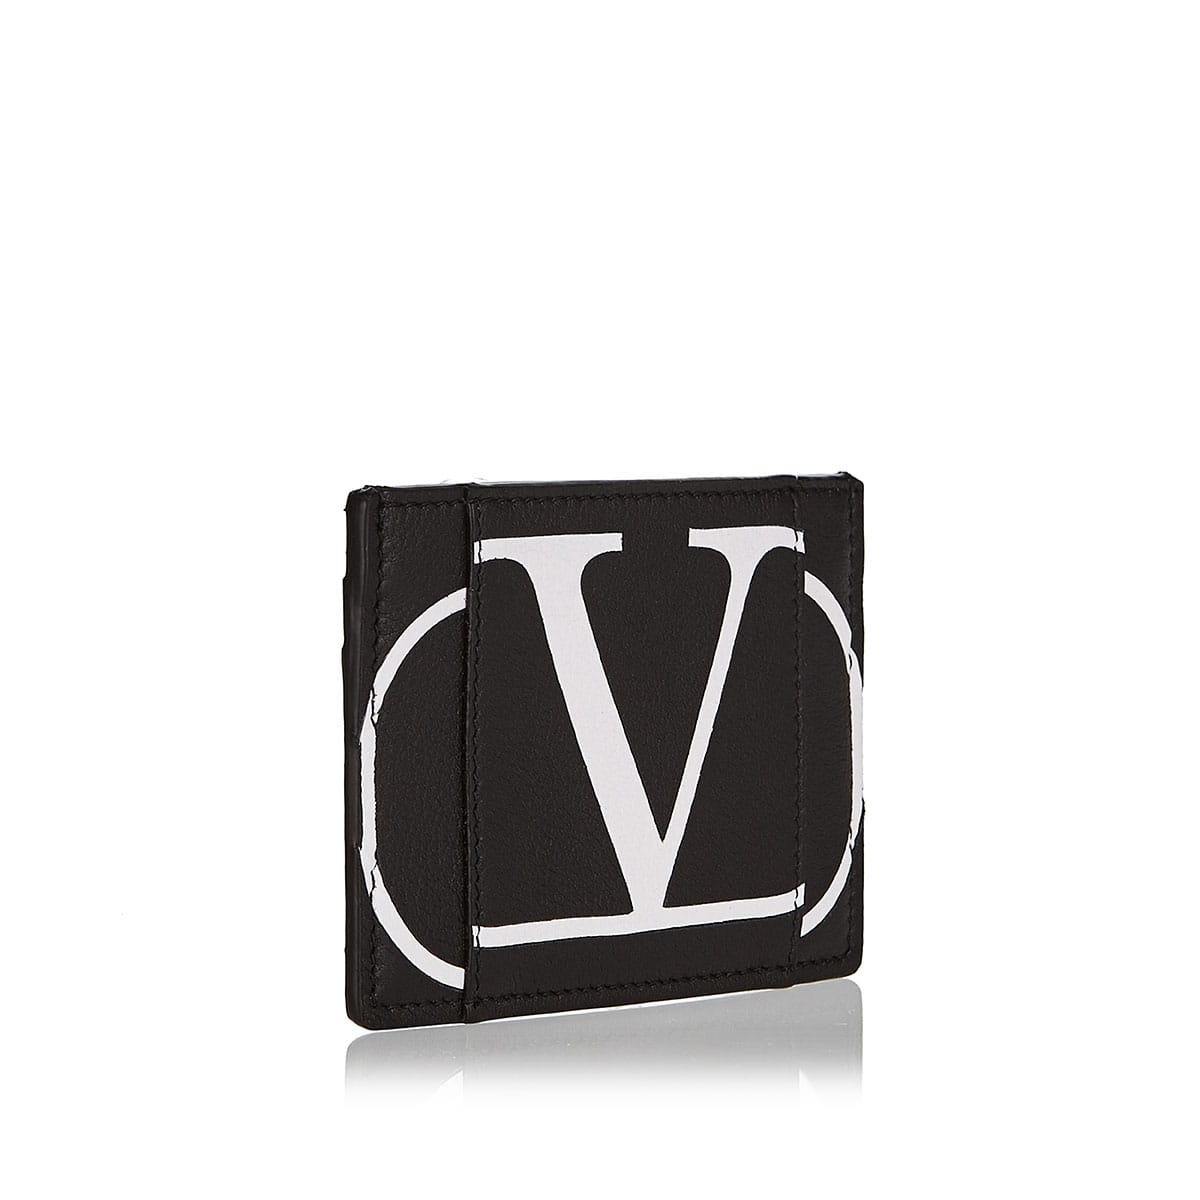 VLOGO leather cardholder